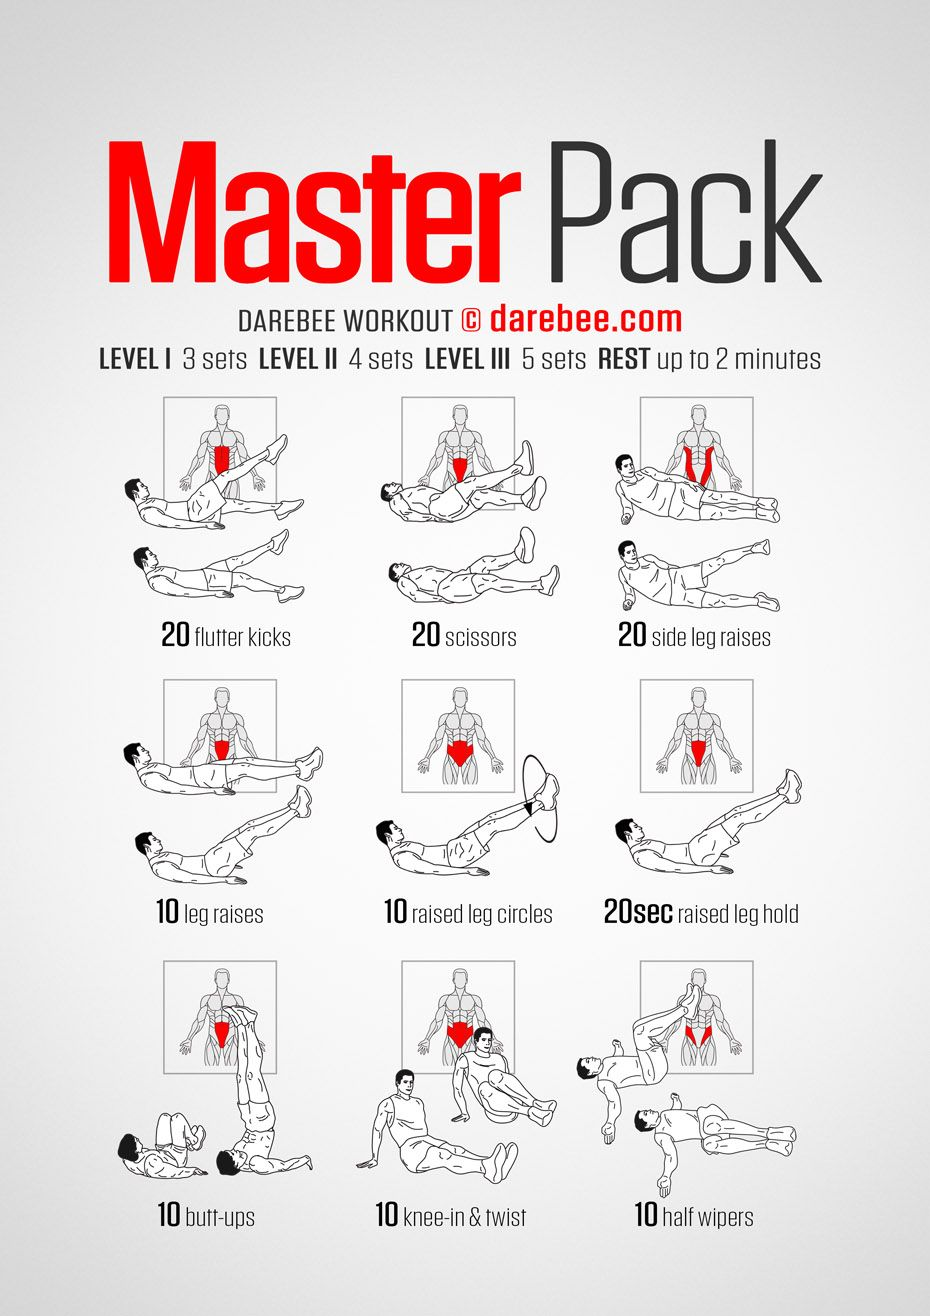 Masterpack Workout #exercisesforupperback